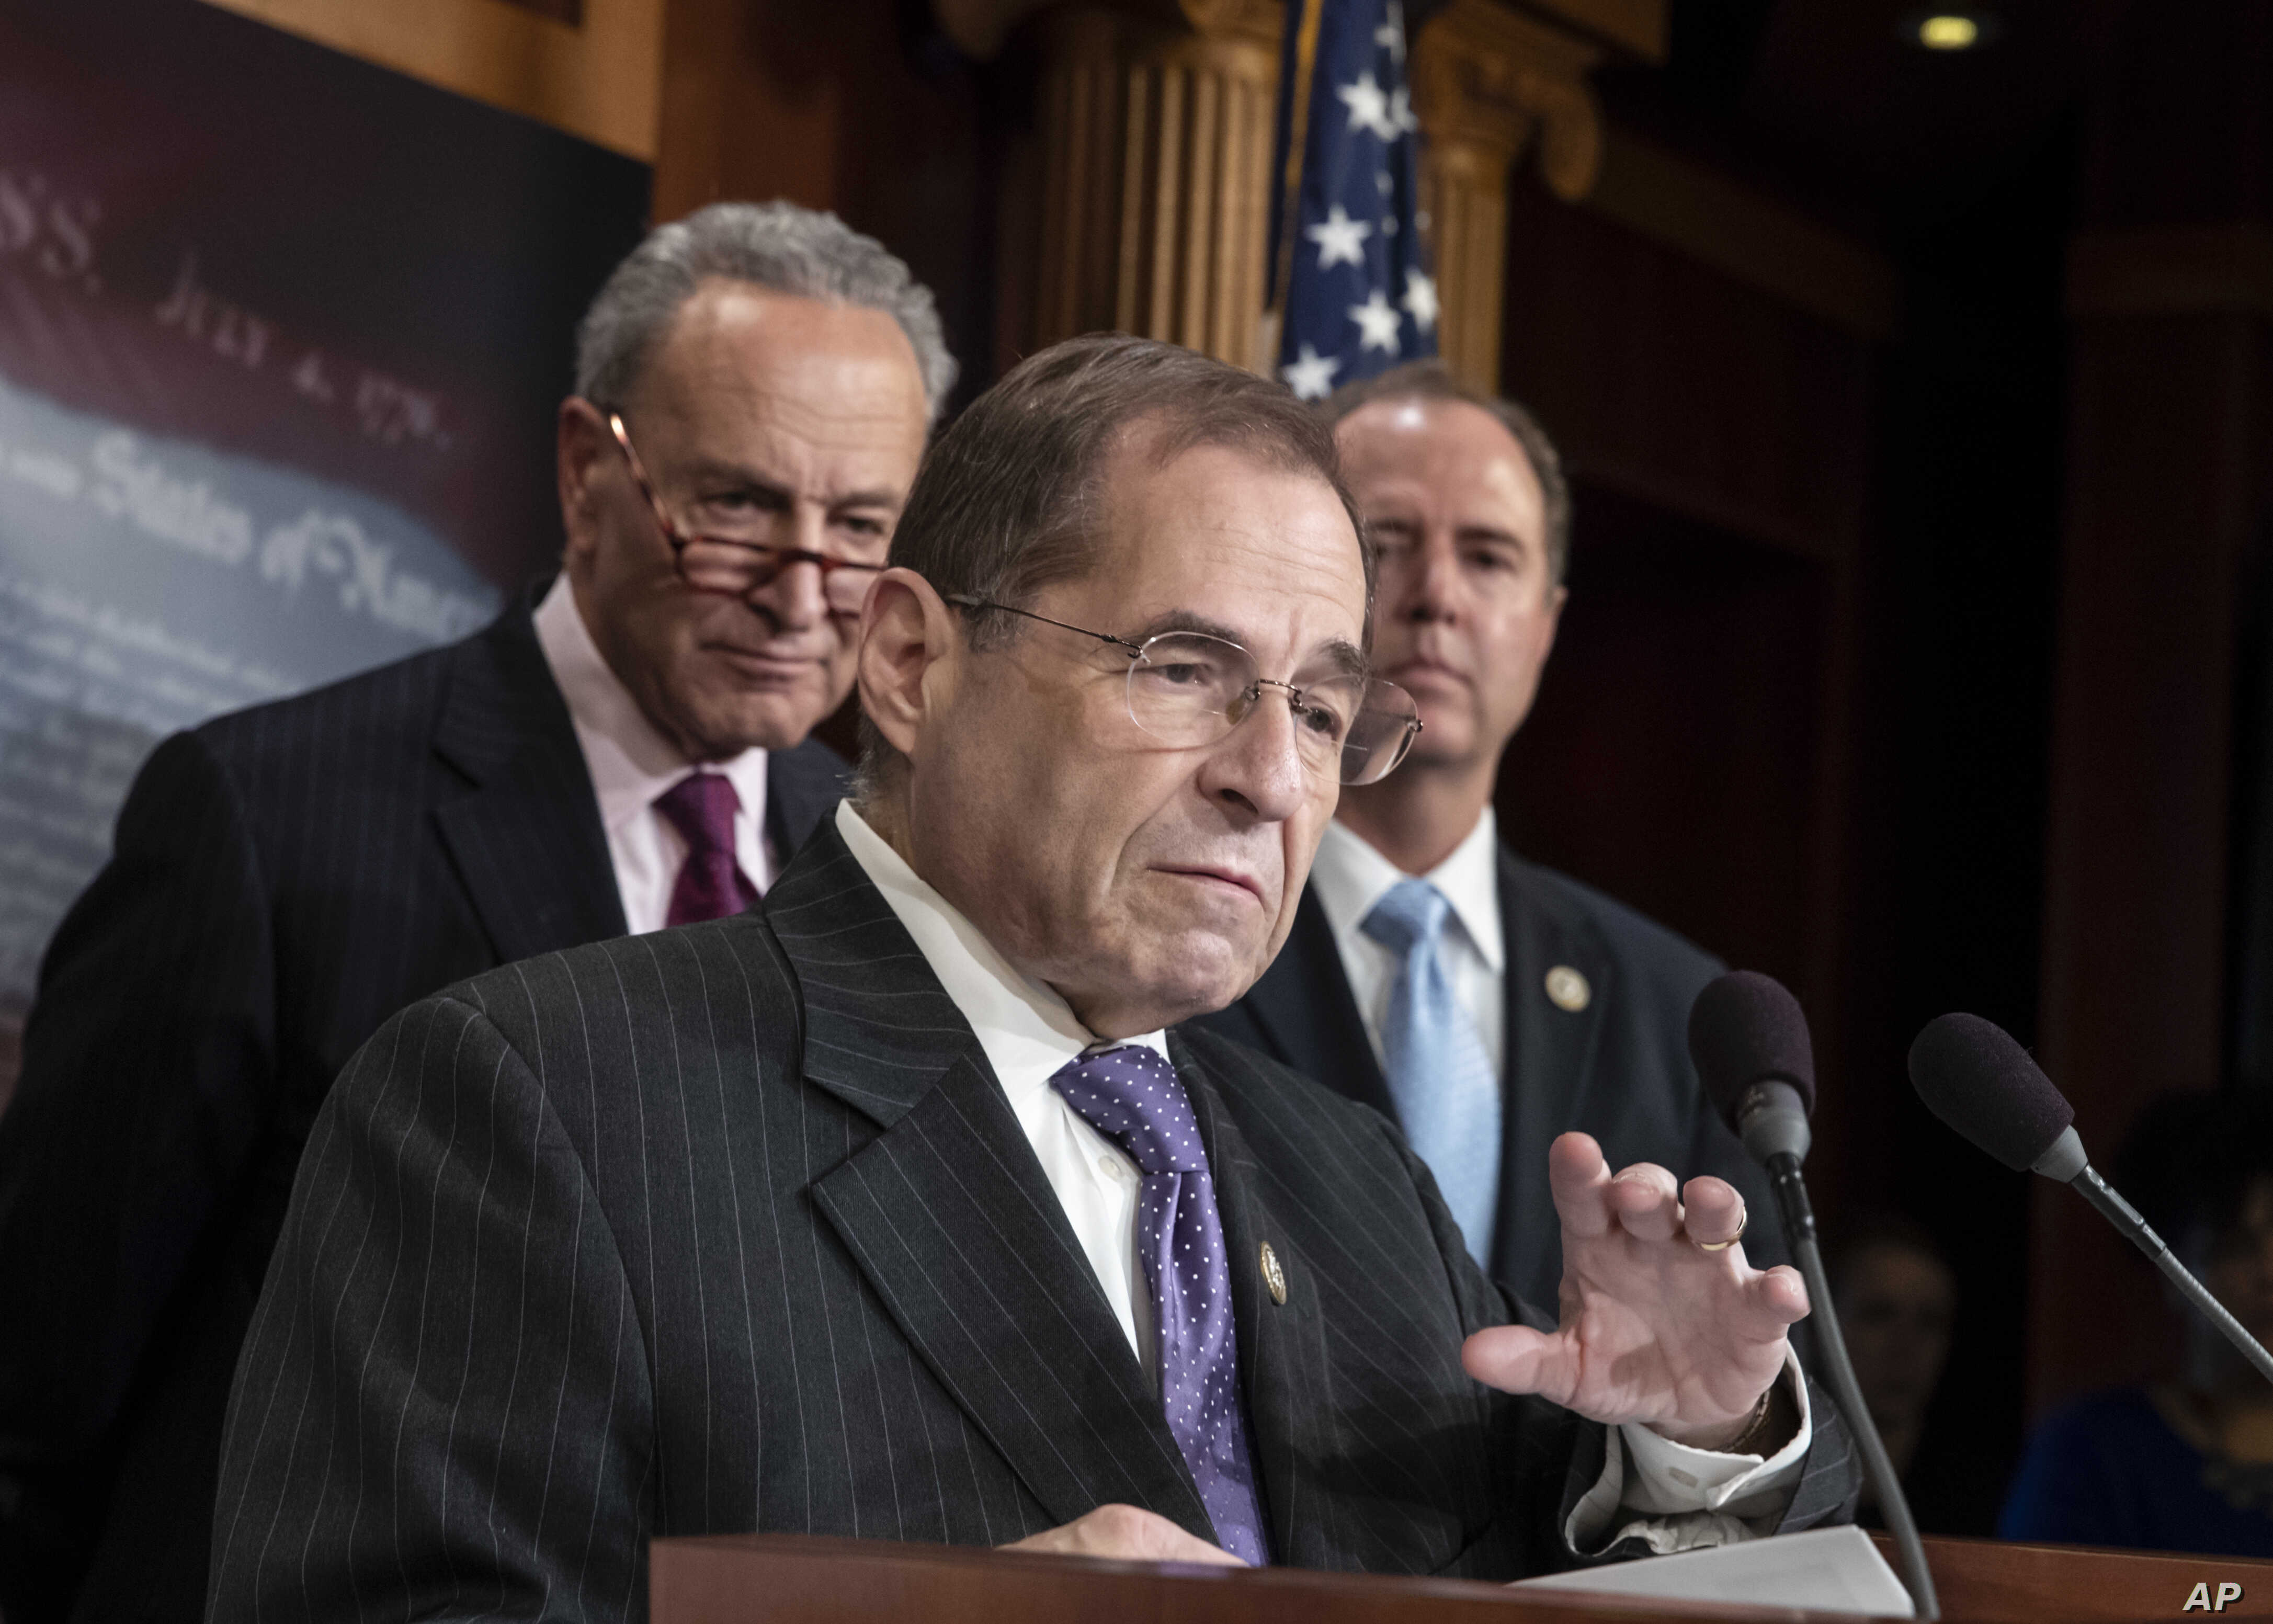 FILE - Rep. Jerrold Nadler, D-N.Y., center, flanked by Senate Minority Leader Chuck Schumer, D-N.Y., left, and Rep. Adam Schiff, D-Calif., speaks on Capitol Hill in Washington, June 14, 2018.